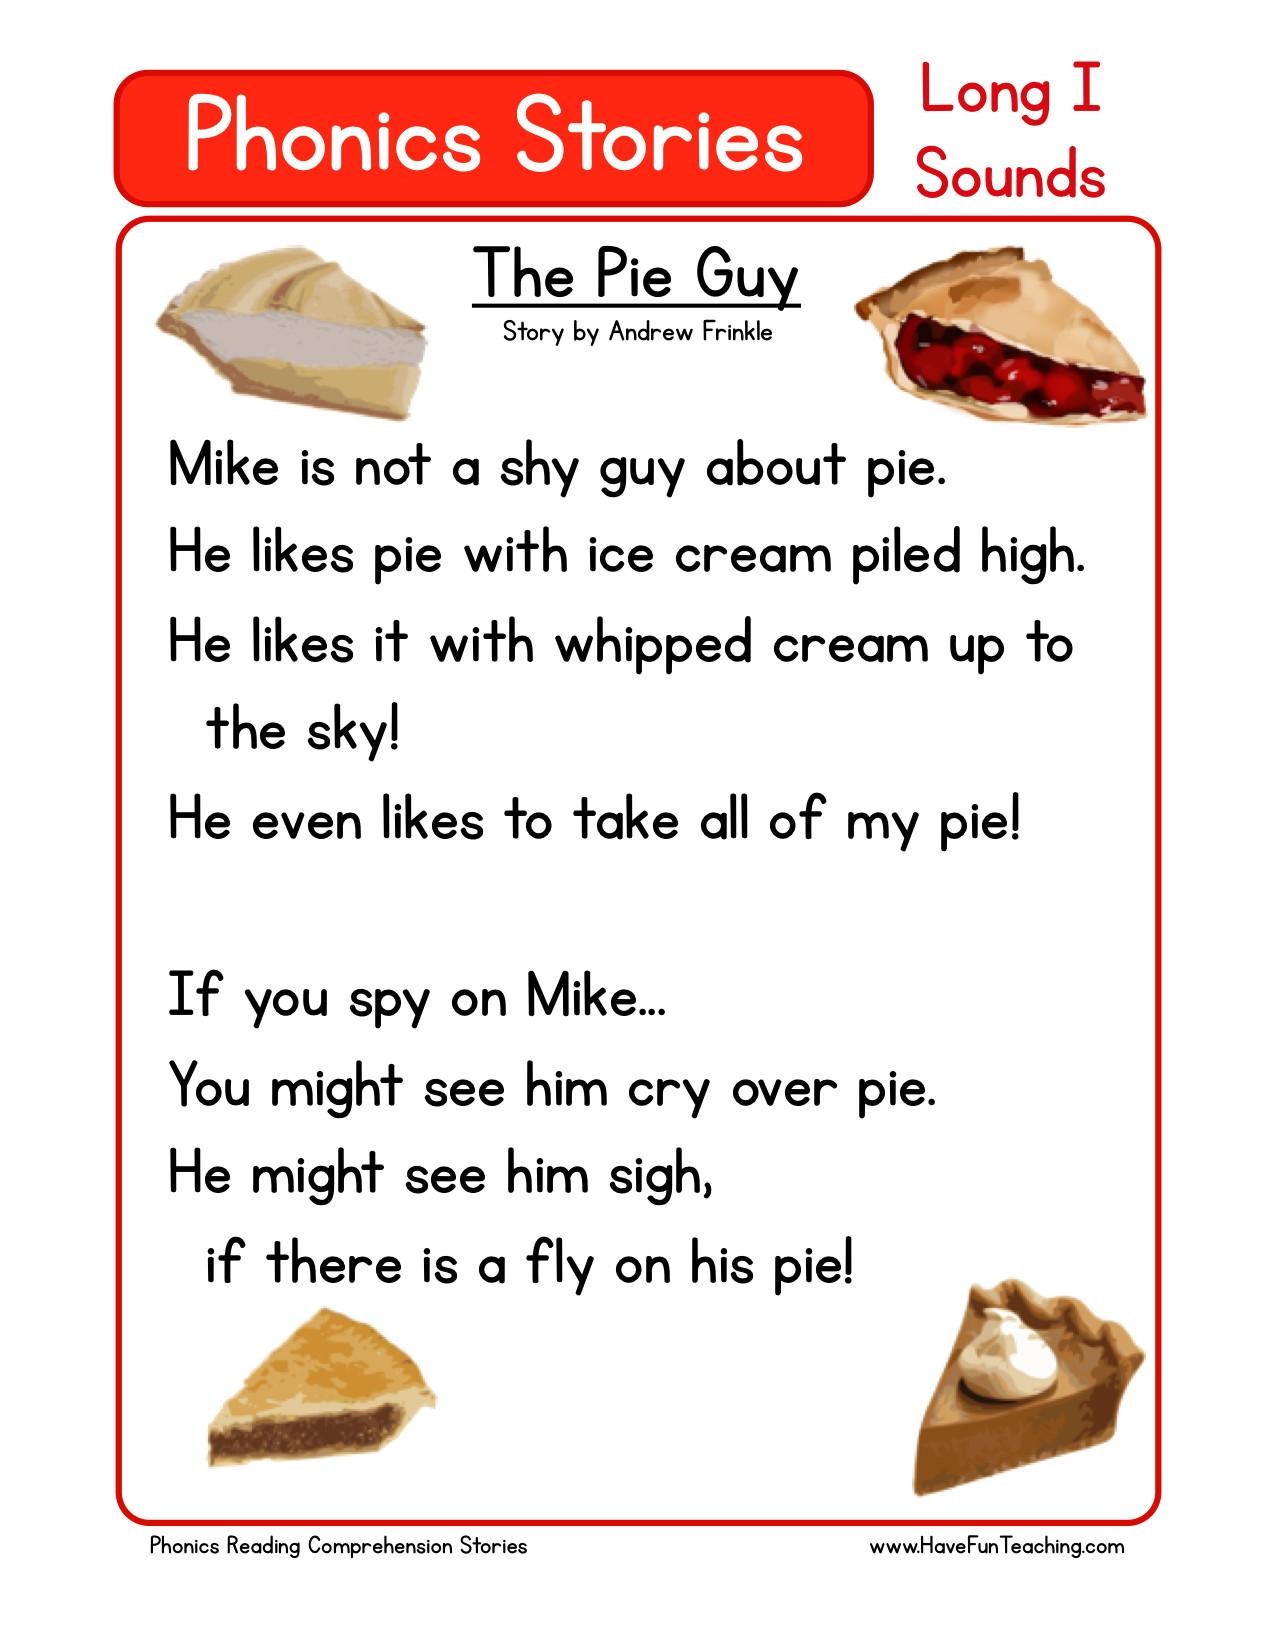 The Pie Guy